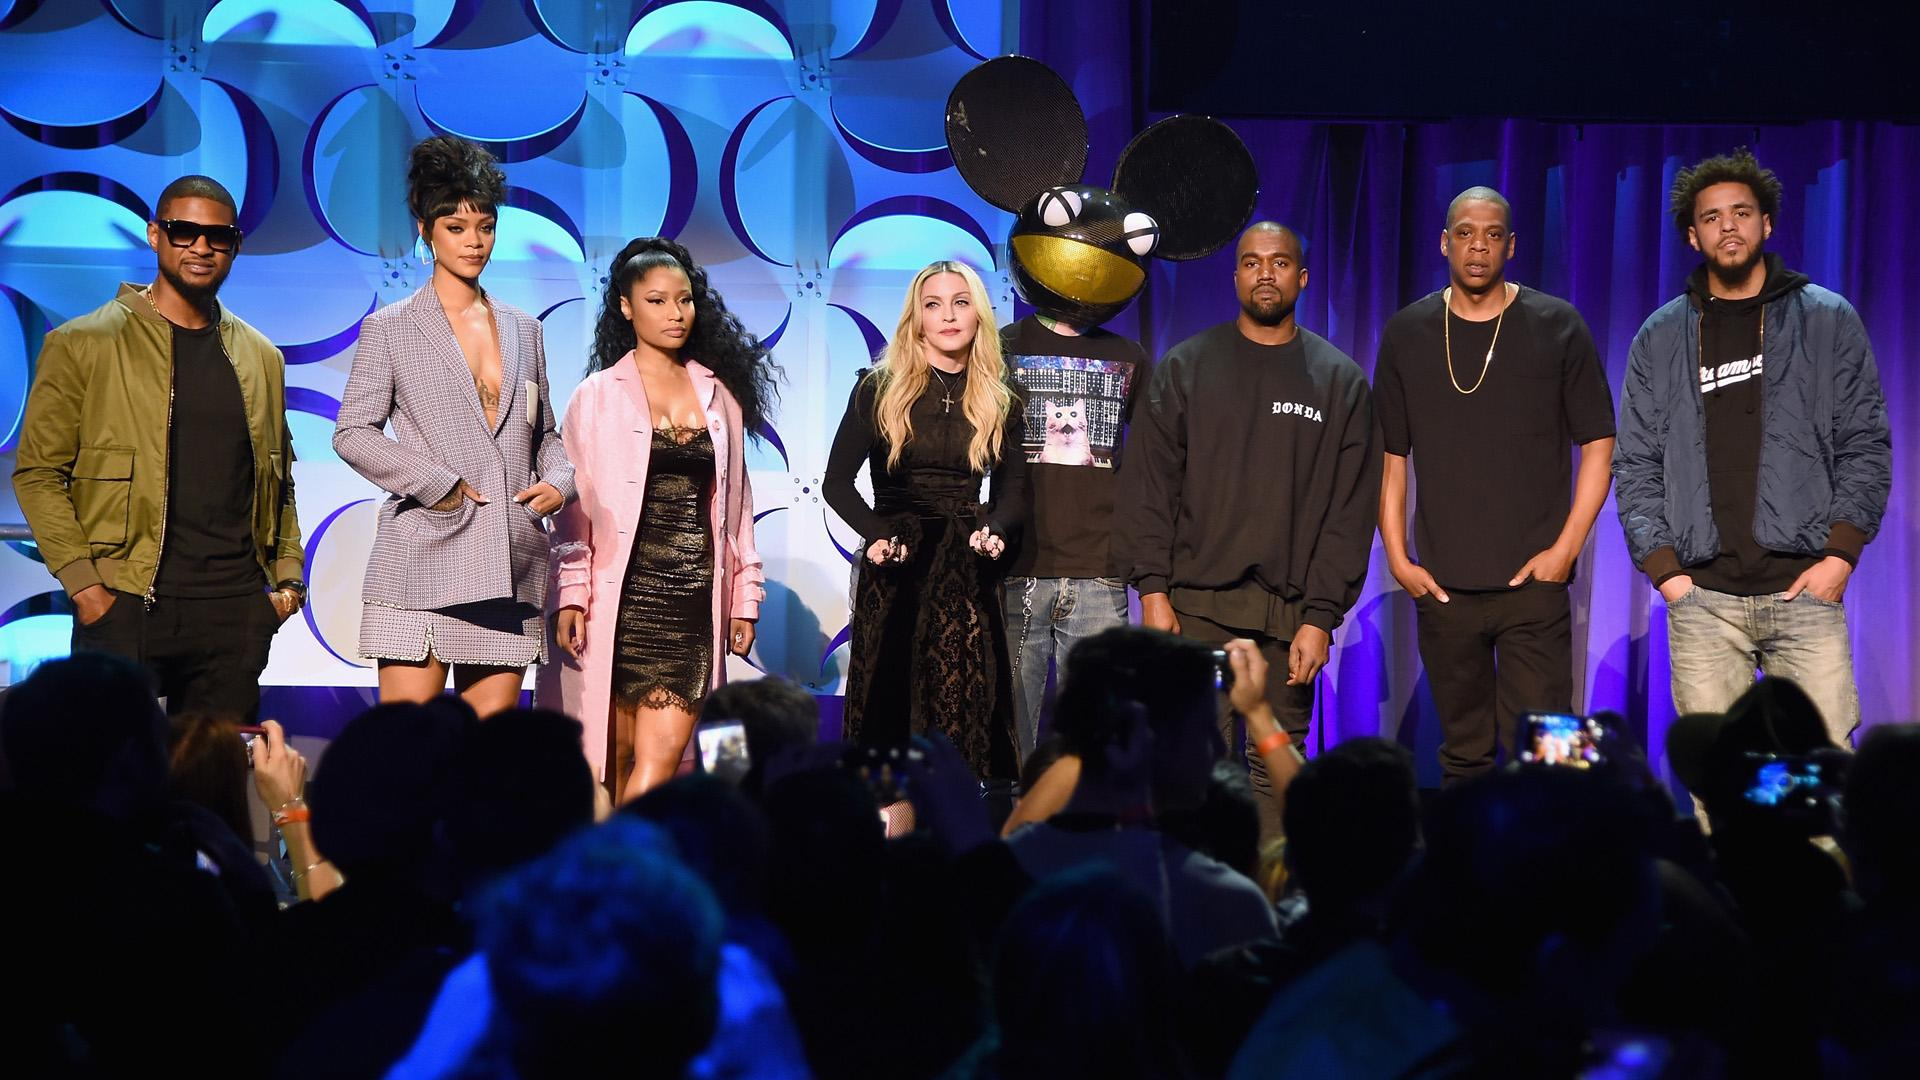 Jay Z Launches Tidal Streaming-Music Service at Star-Studded Event